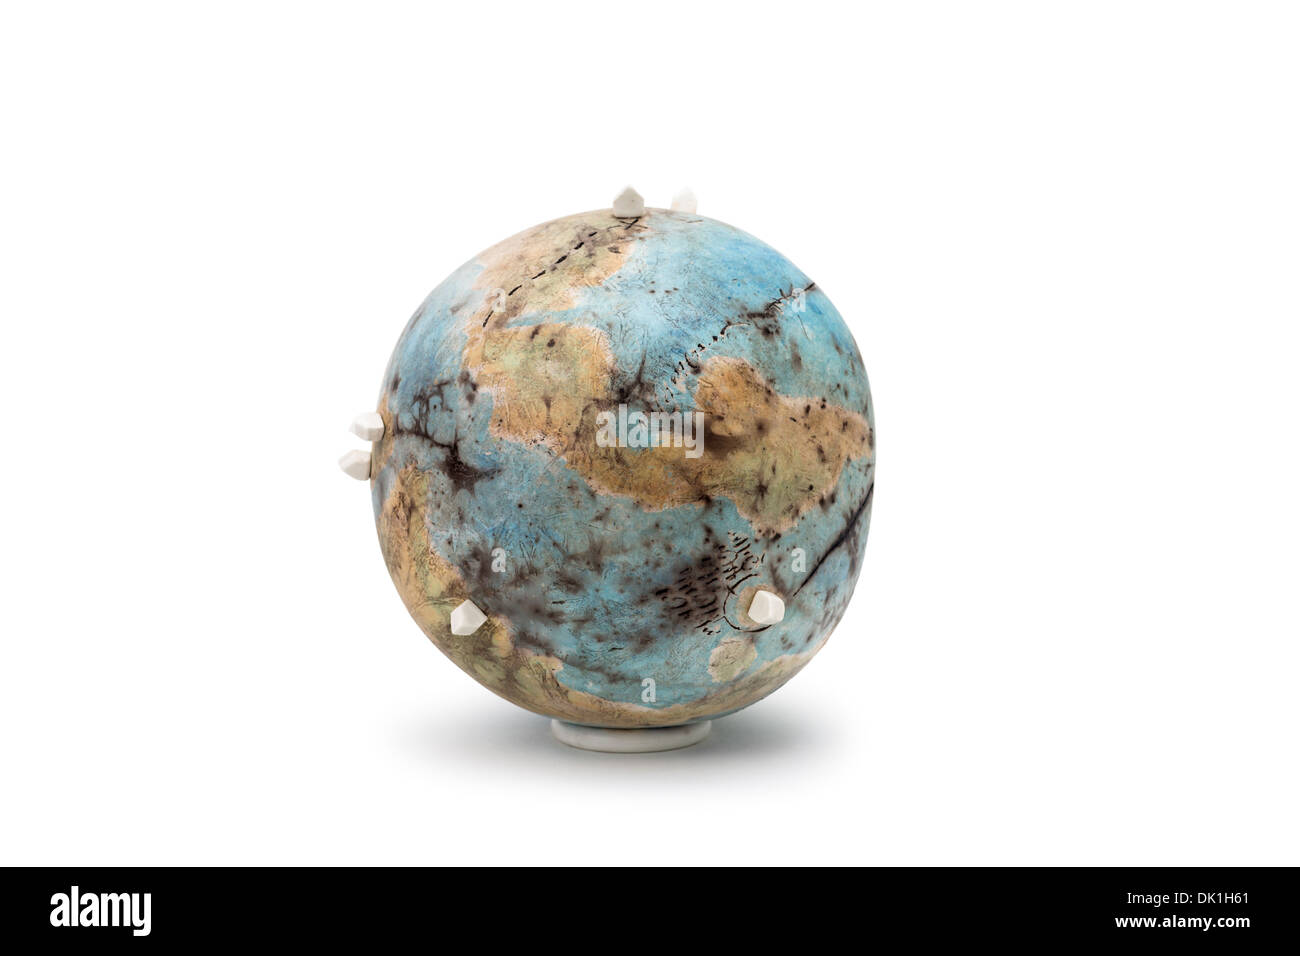 Modern sculpture by Jacques GALLON, ceramist. Fictional and poetic planet. - Stock Image